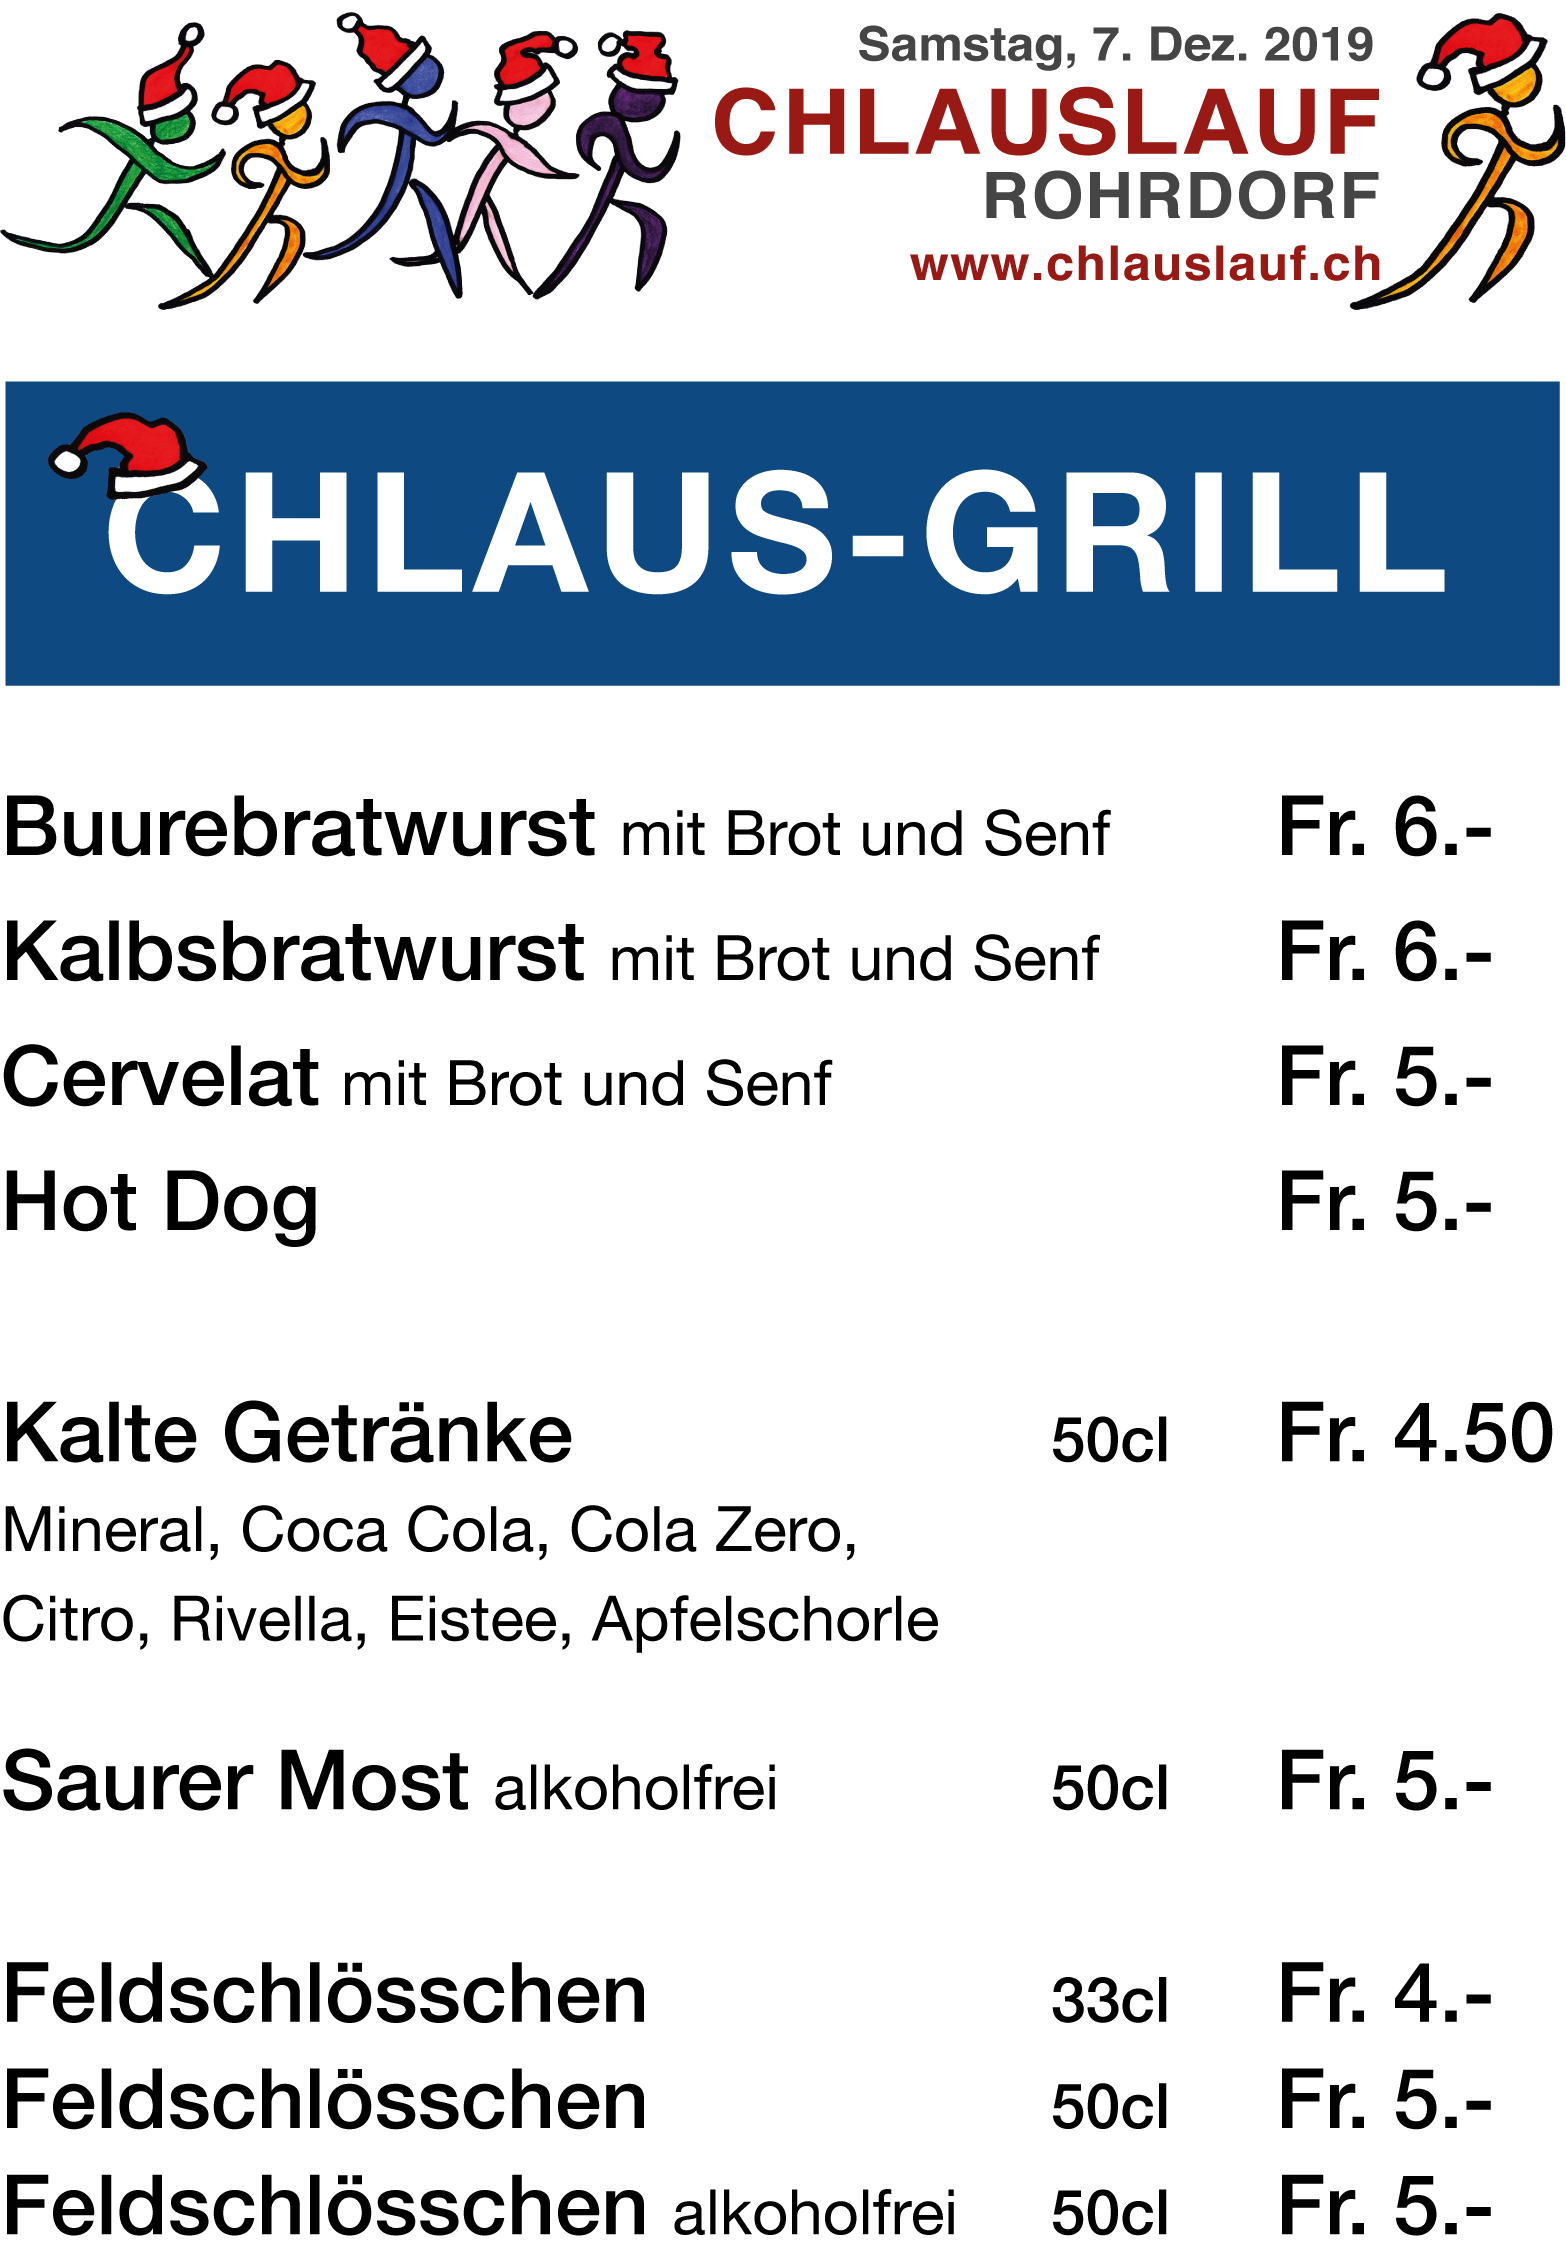 chlausgrill 2019